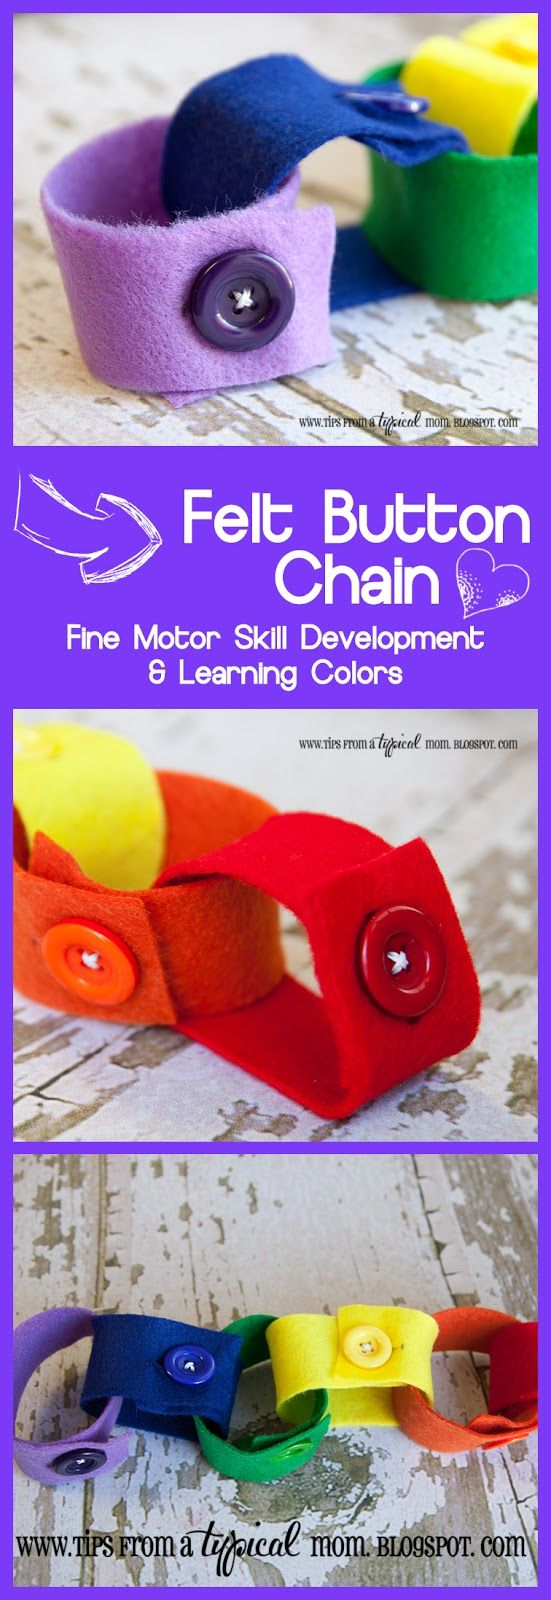 These cute colorful links are perfect for teaching your child about colors and helping them with fine motor skills.